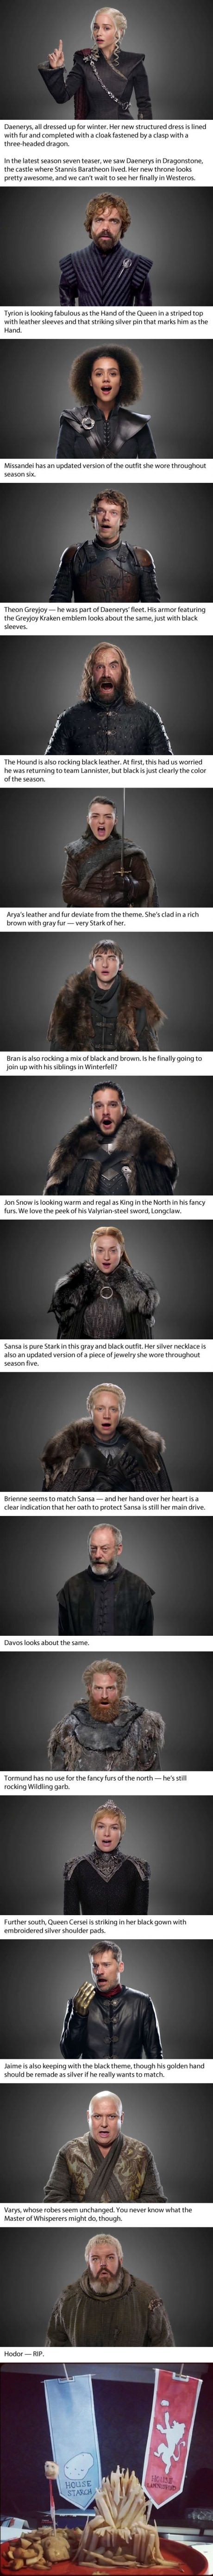 HBO just unveiled a peek at 15 new character looks for 'Game of Thrones' season 7